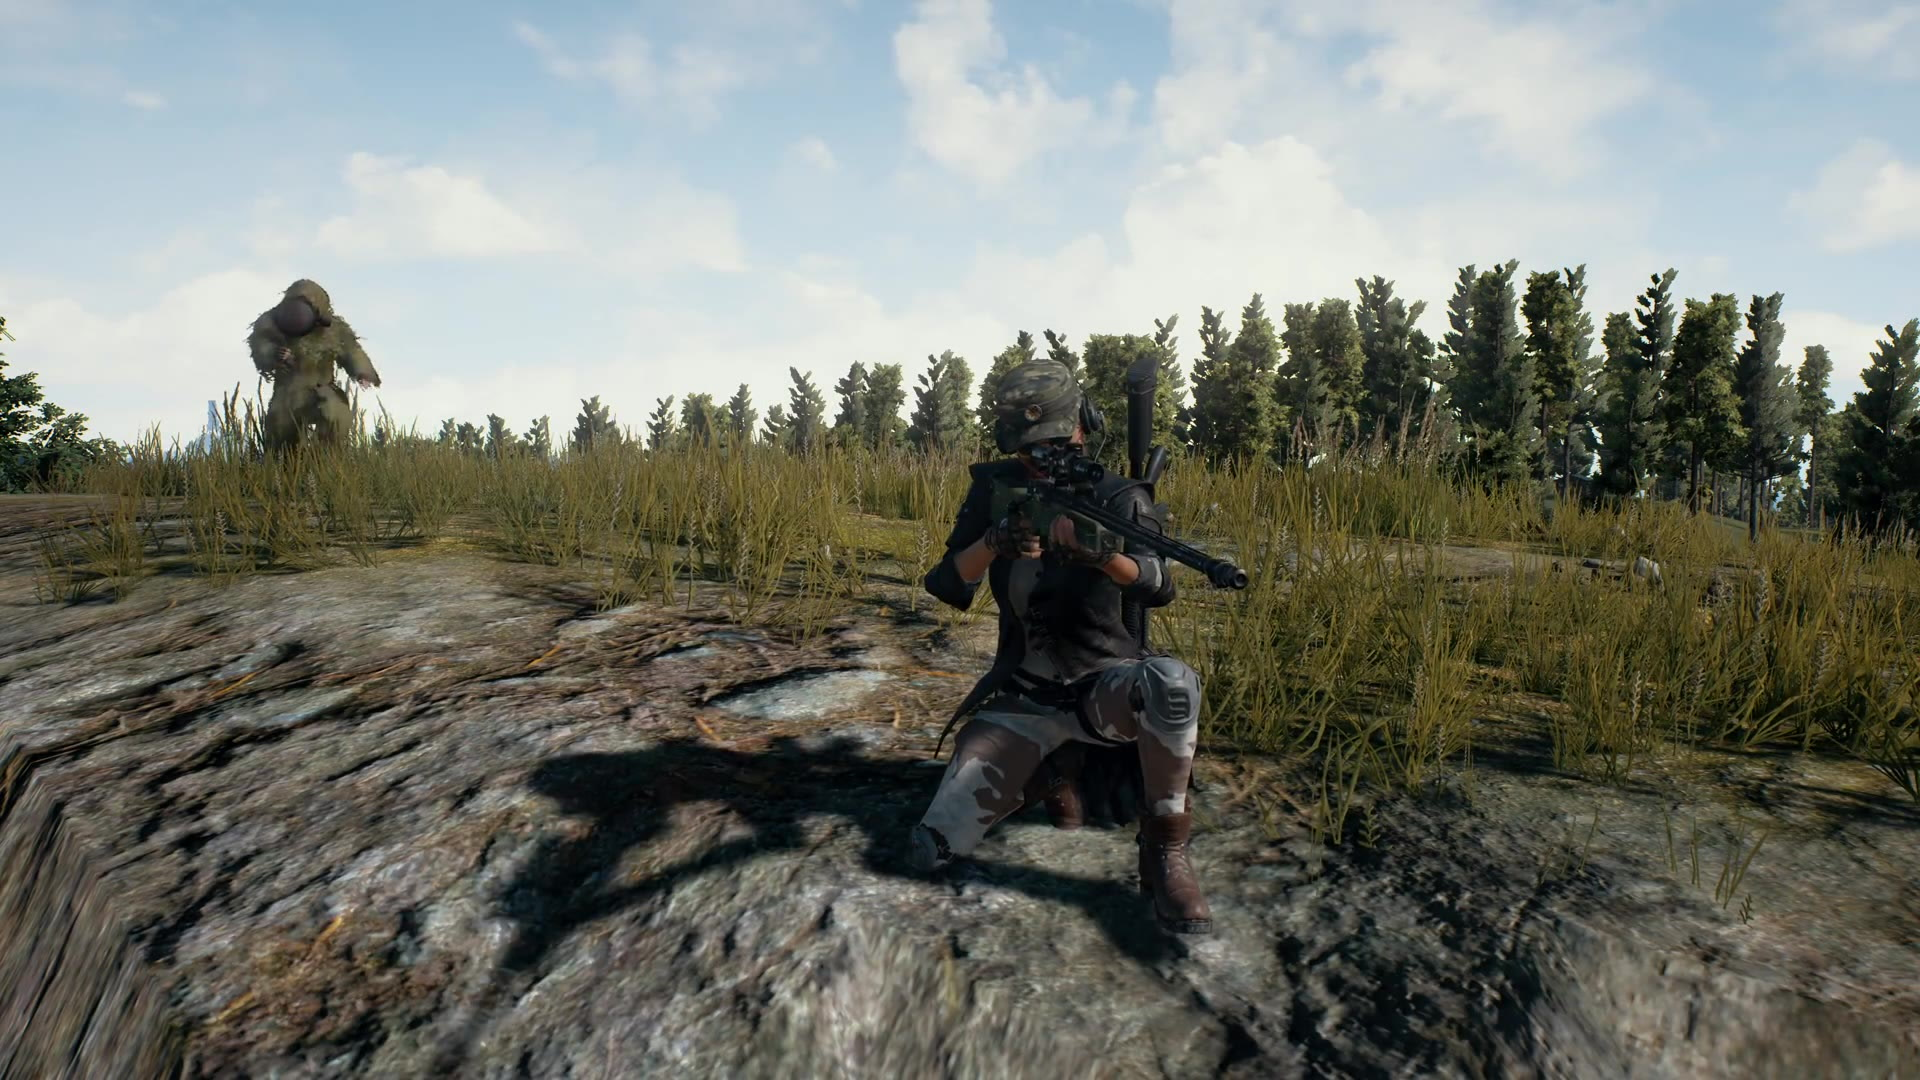 [Update] PUBG Anti-Cheat Update Arrives February 5th 6PM PST